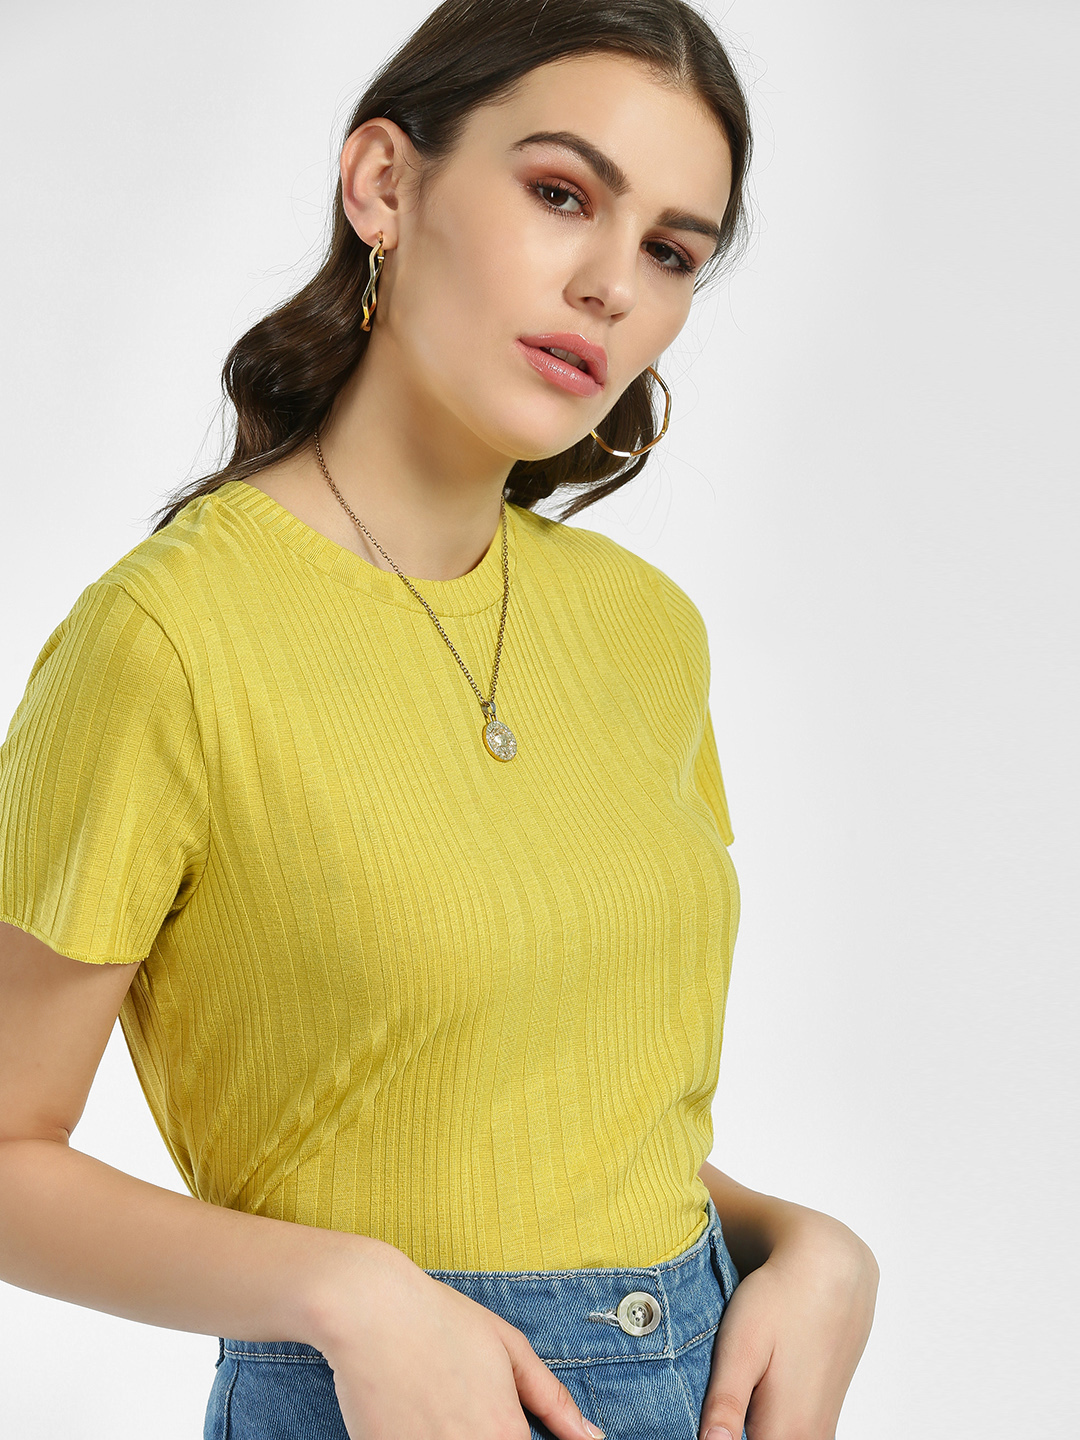 Sbuys Yellow Ribbed Crop Top 1